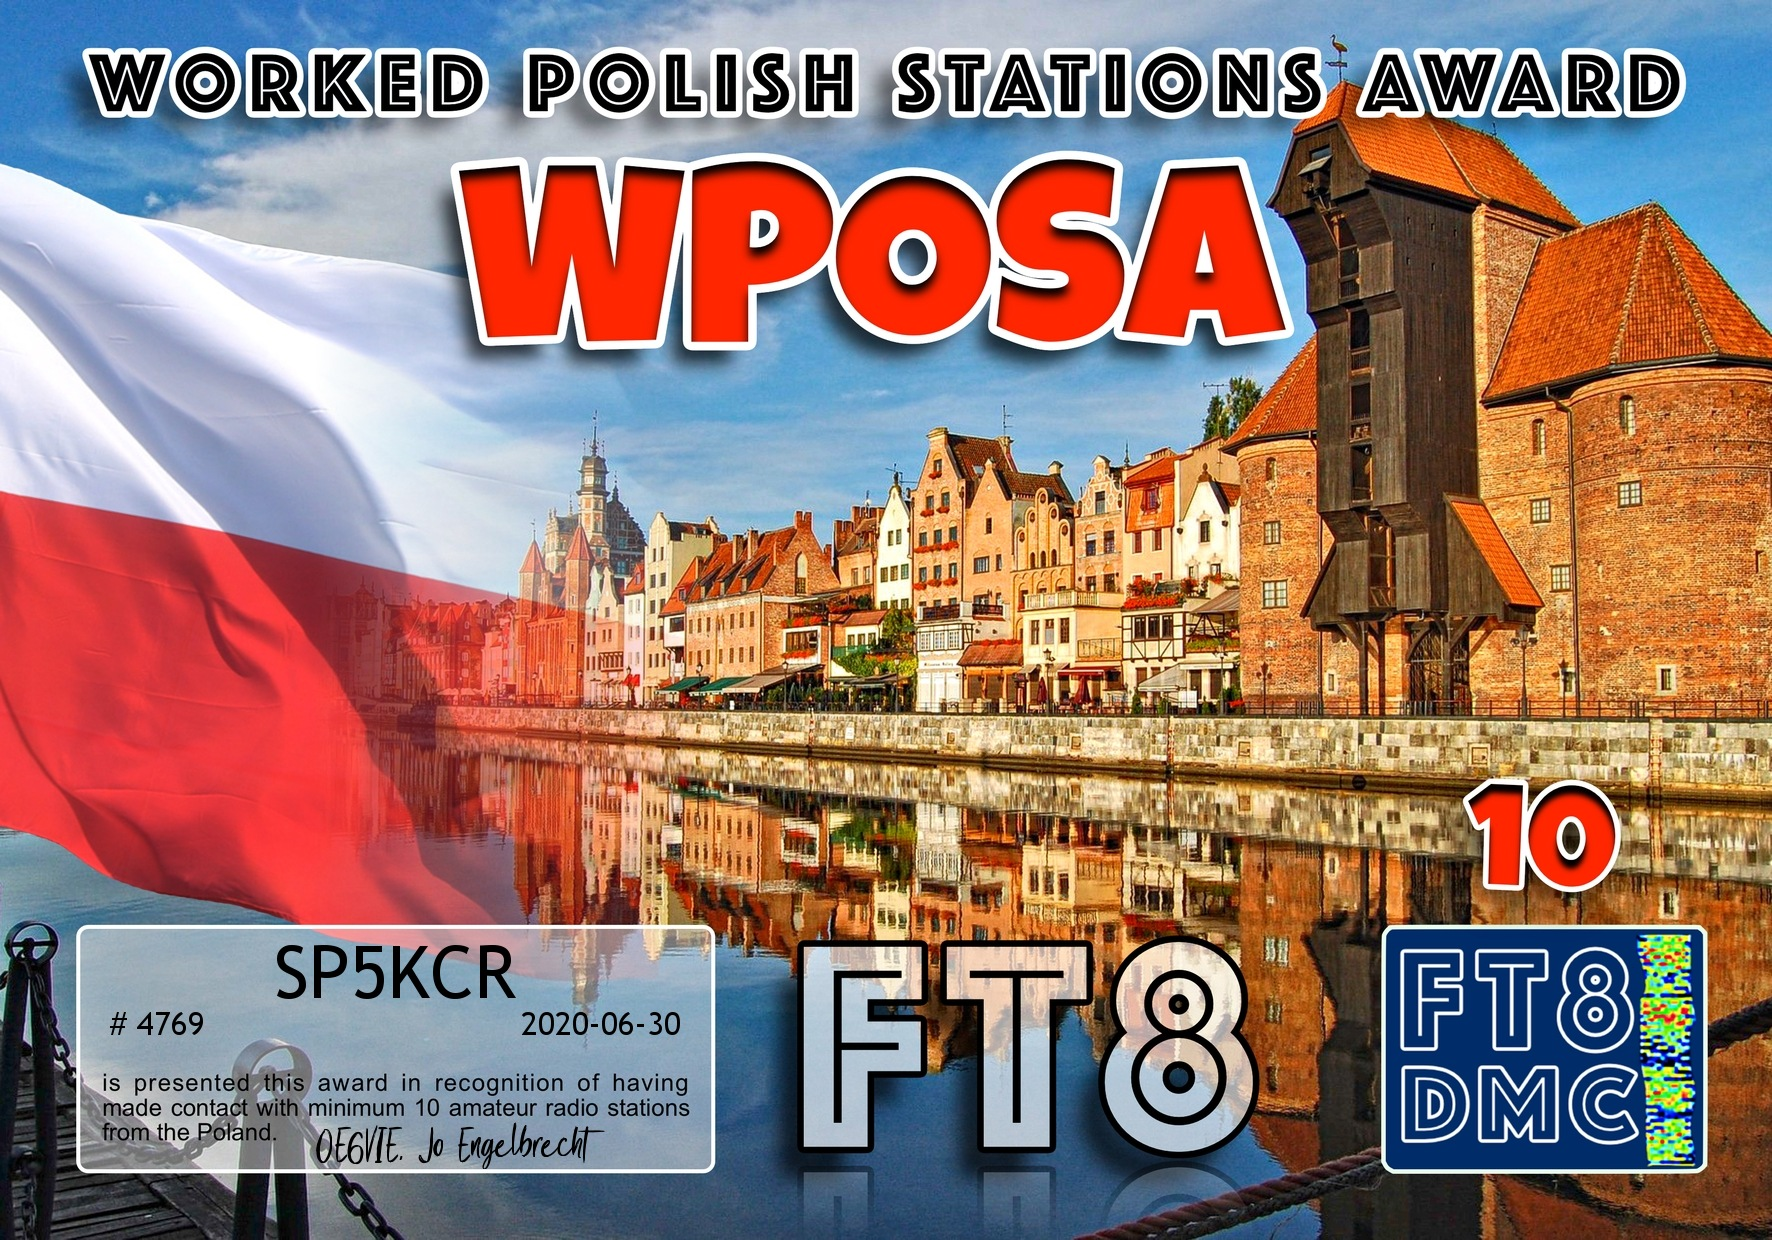 SP5KCR WPOSA III FT8DMC